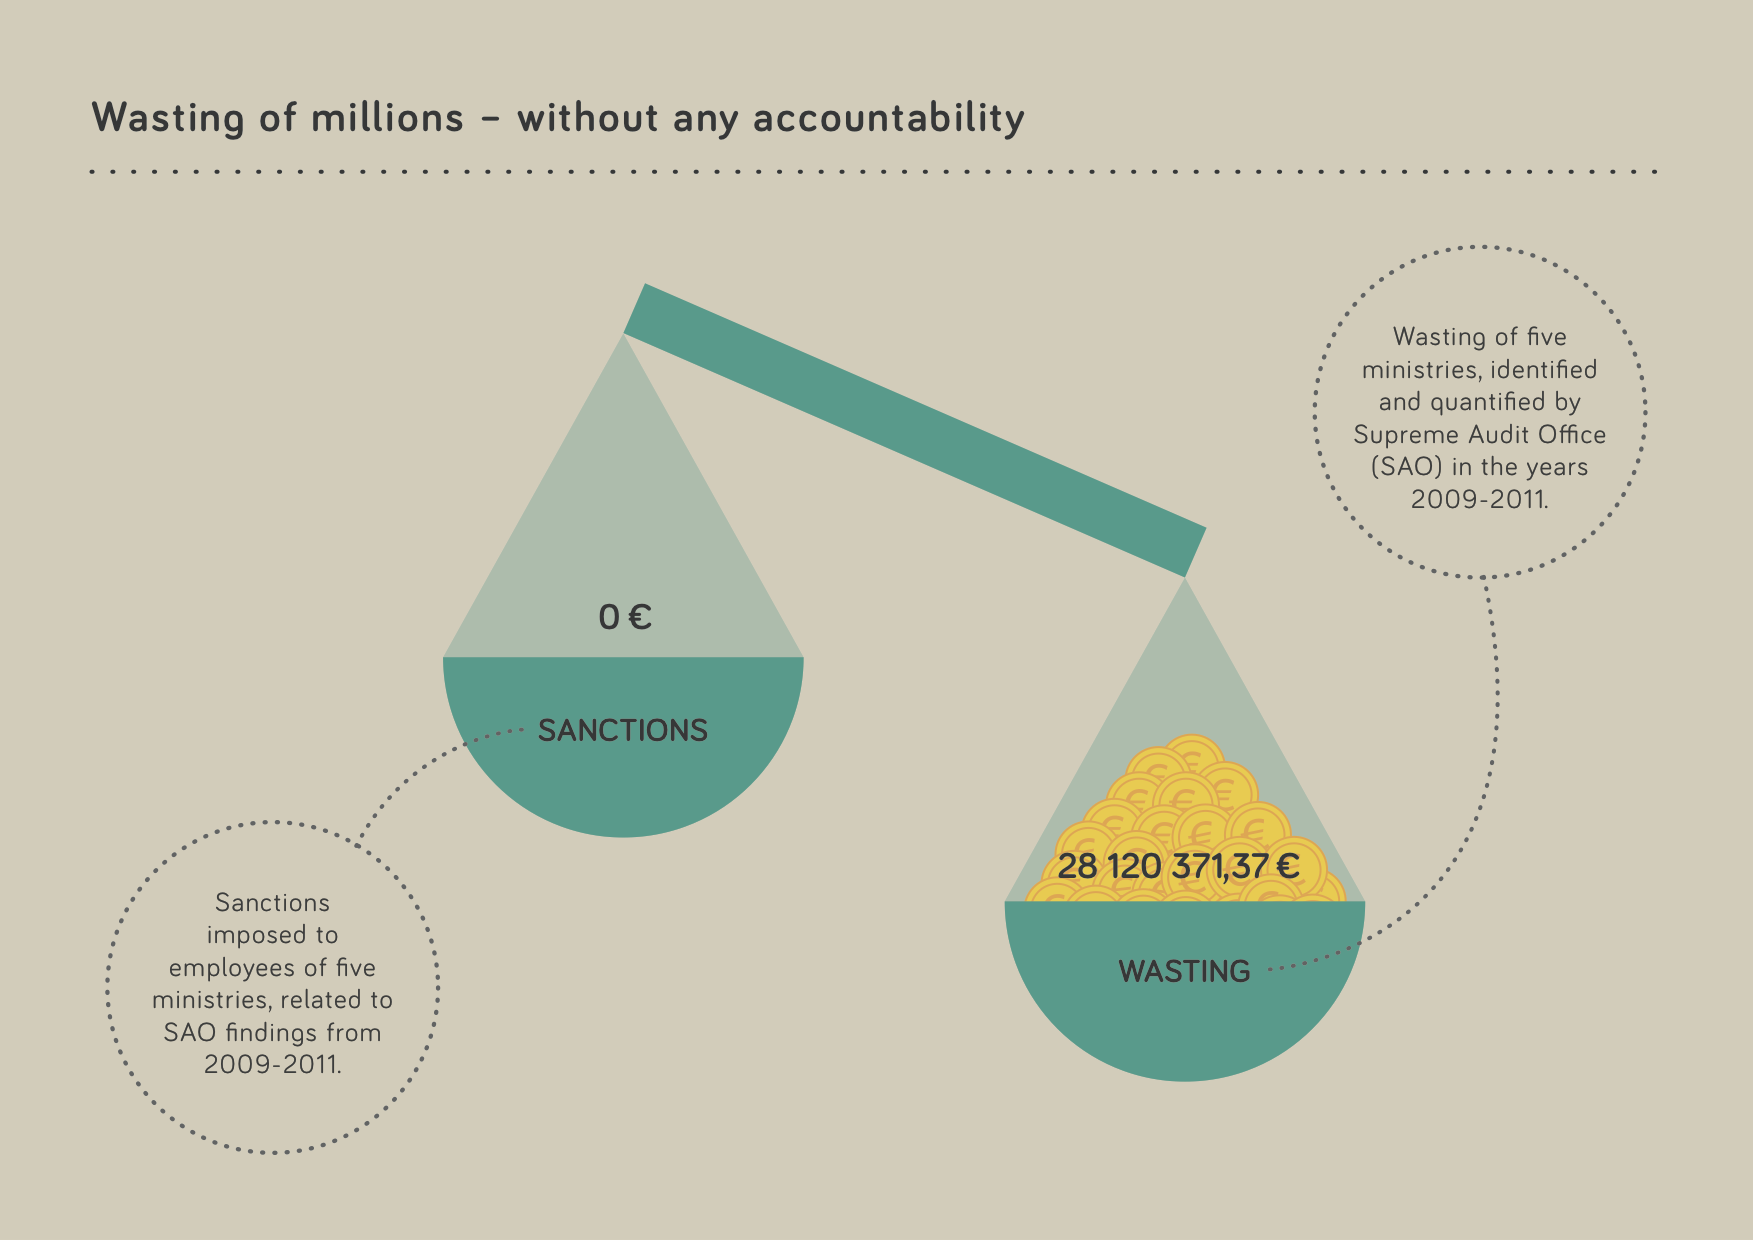 Wasting of millions - without accountability — TTDATAVIS